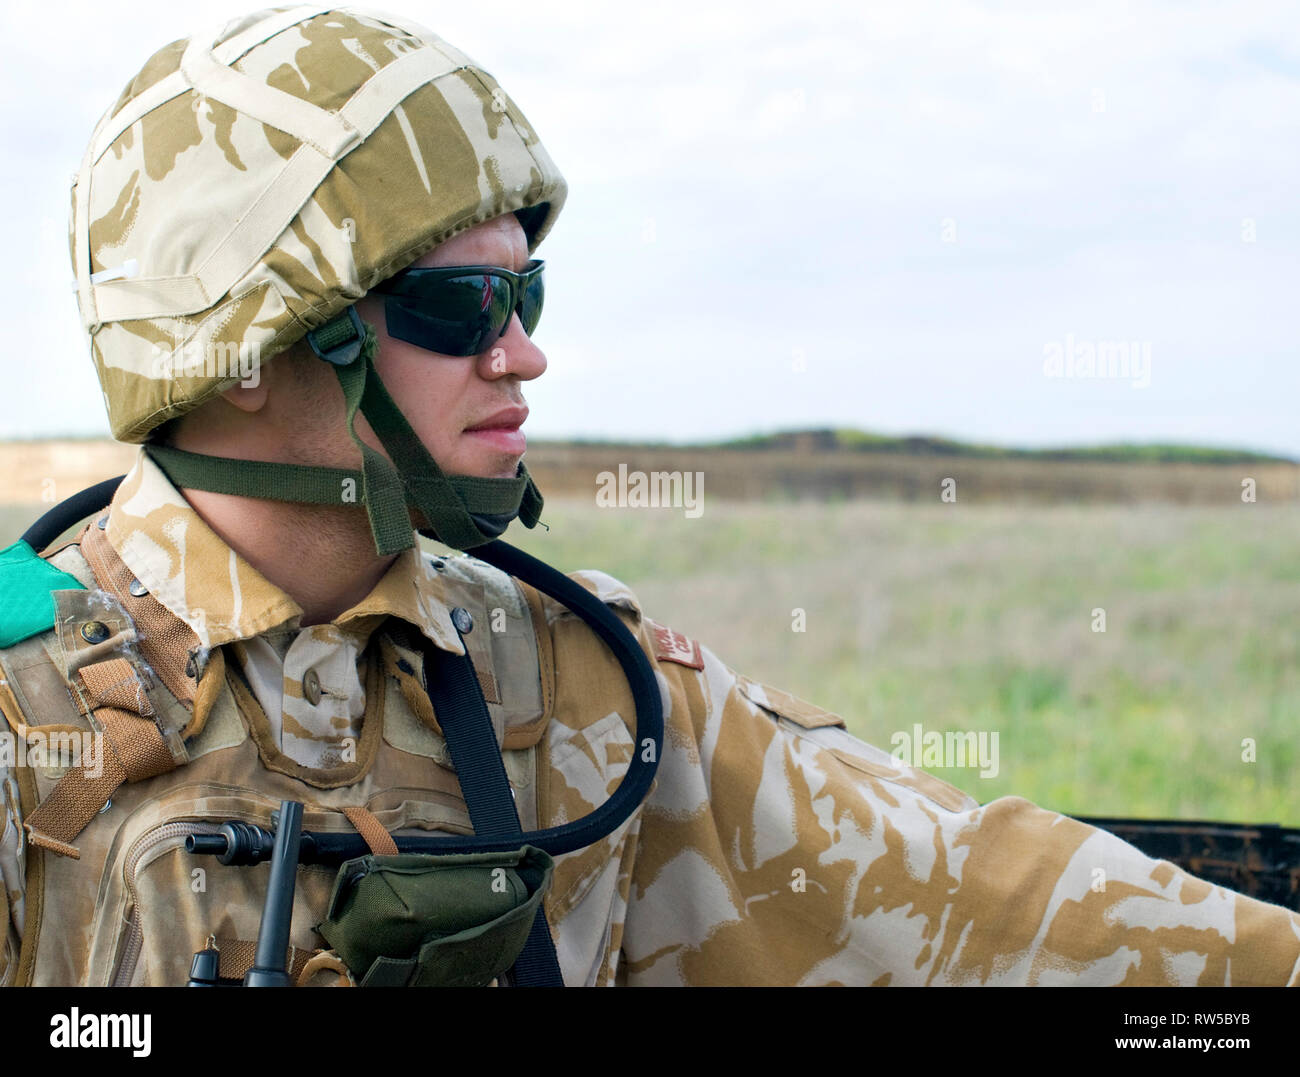 British soldier with the reflection of UK flag in glasses looking forward. - Stock Image